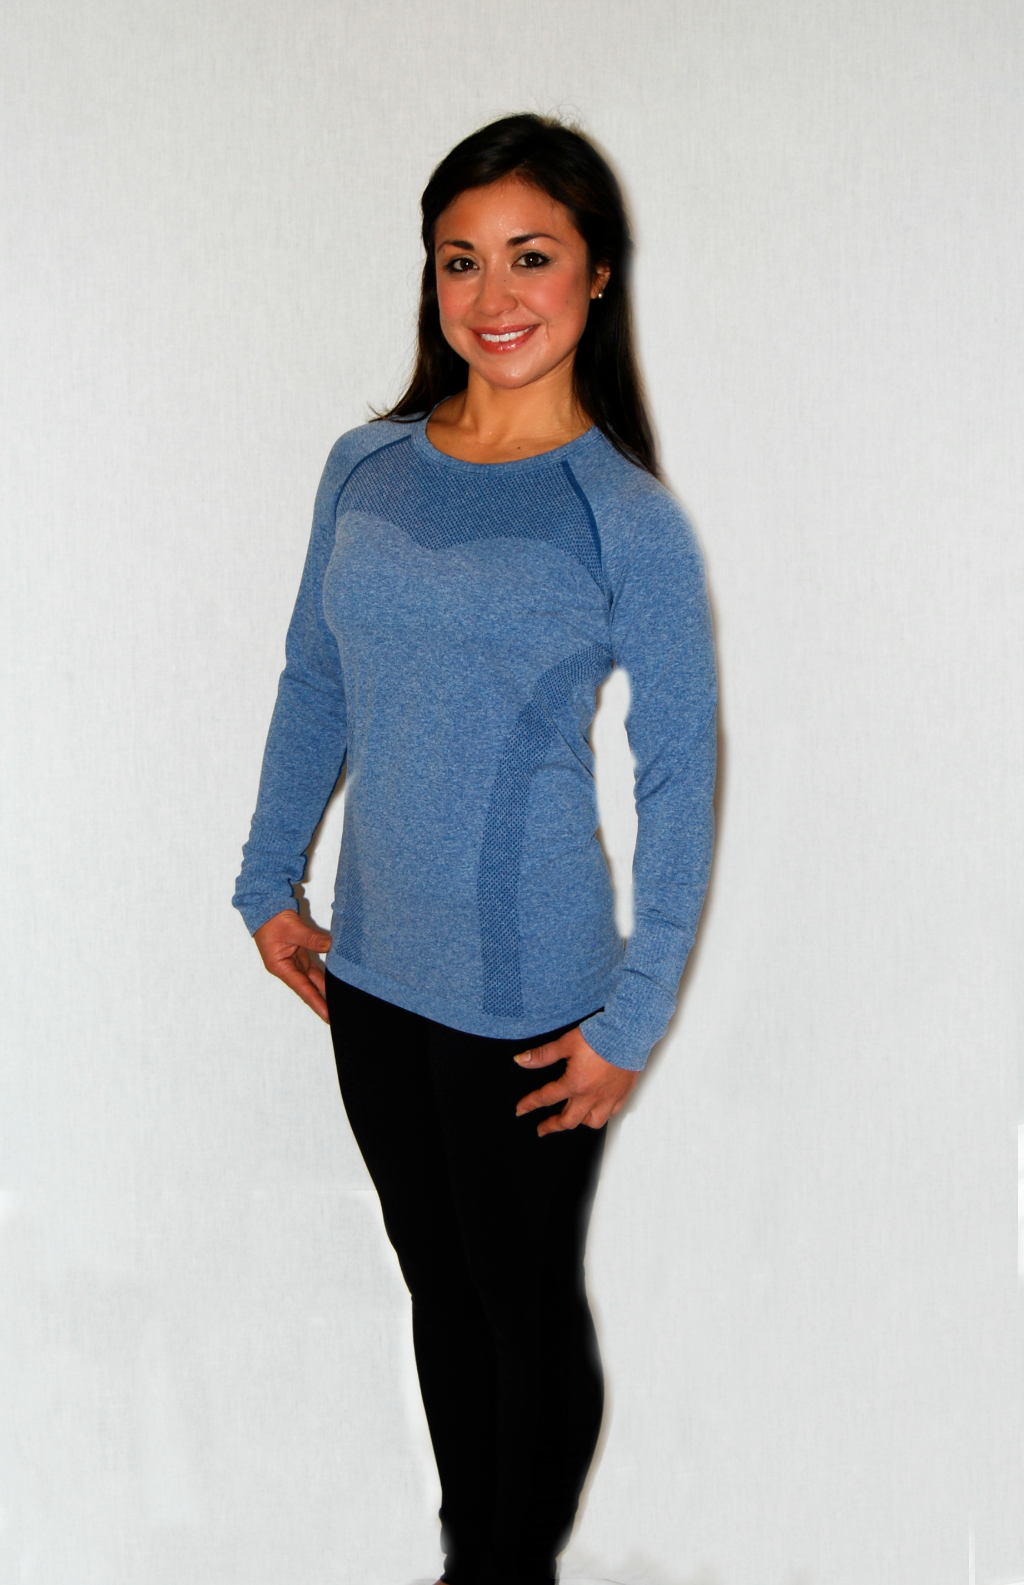 Lightweight, moisture-wicking fabric makes this a perfect layer. Lorna Jane - Raye L/S Seamless Top - Ocean Marl